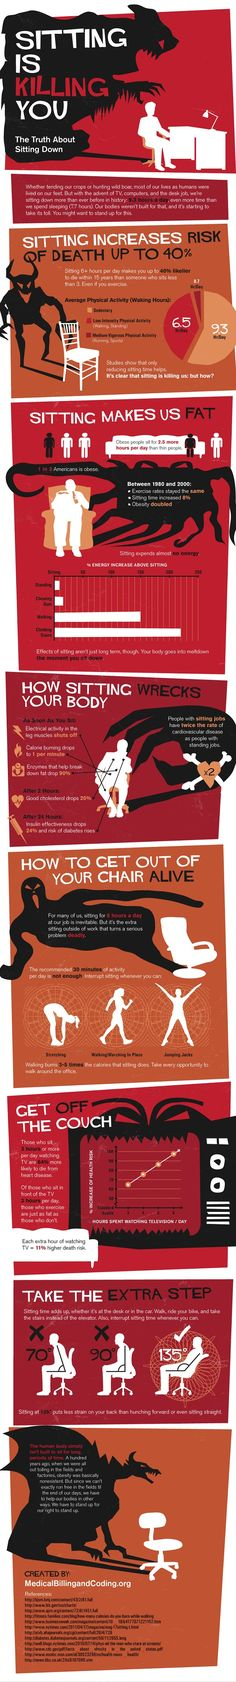 sitting is killing you???  Source:http://www.google.com/imgres?q=fitness+infographics=1=en=1366=643=isch=IrMq_Pplb-CcyM:=http://www.mindbodygreen.com/0-2420/Sitting-Is-Killing-You-Infographic.html=xjBTZkfOL5X8DM=600=4278=MxVHTvfBLs6JsAKbgoGSCA=1